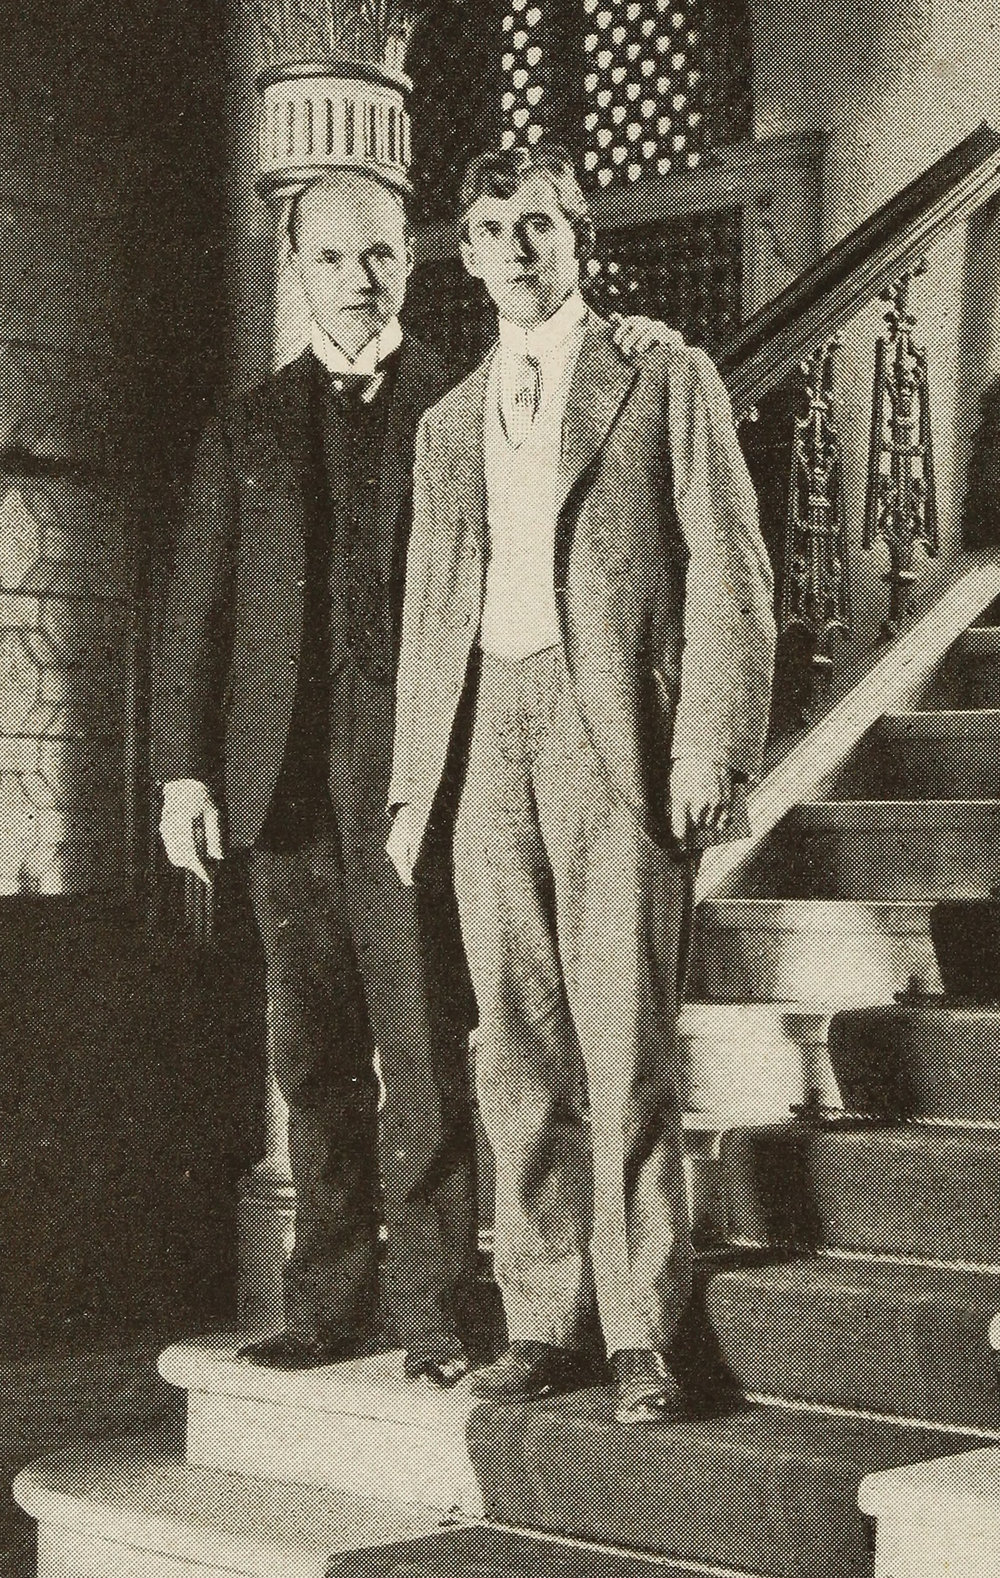 Alexander & Harkness in New Zealand, 1902, in  Twice Around the World with Alexander  (1907).